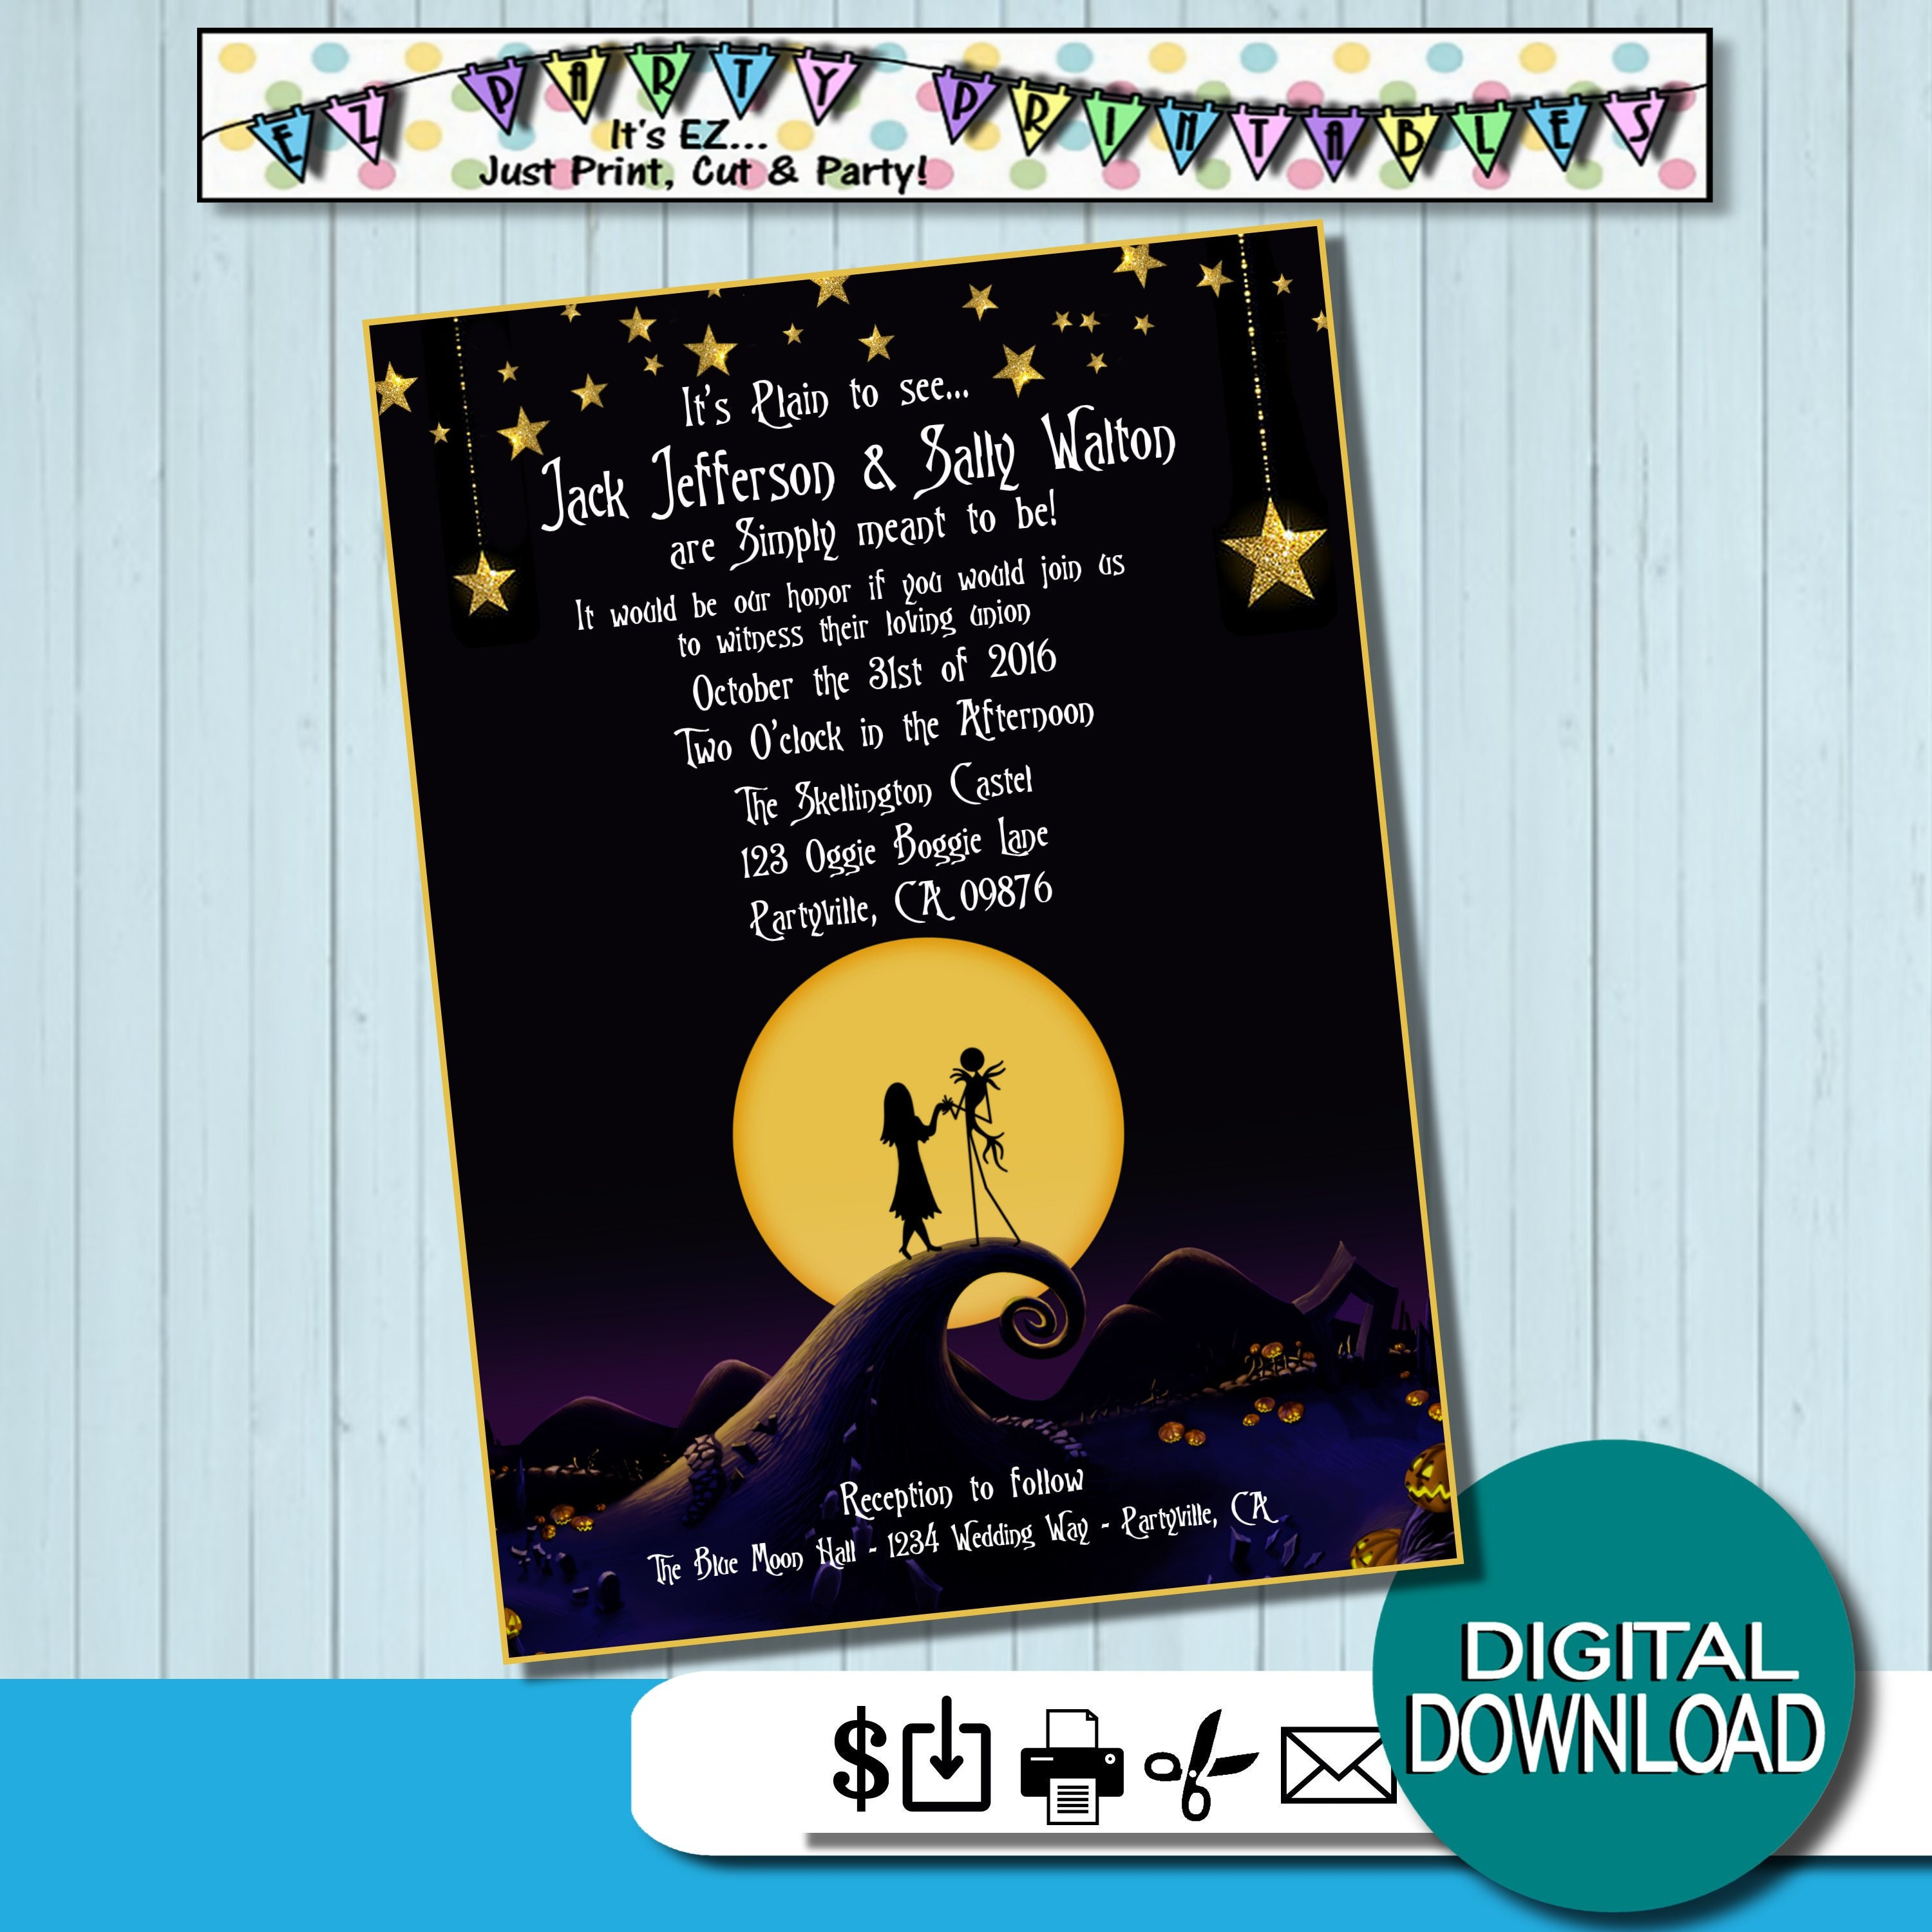 Nightmare before Christmas Wedding Invites Simply Meant to be | Etsy